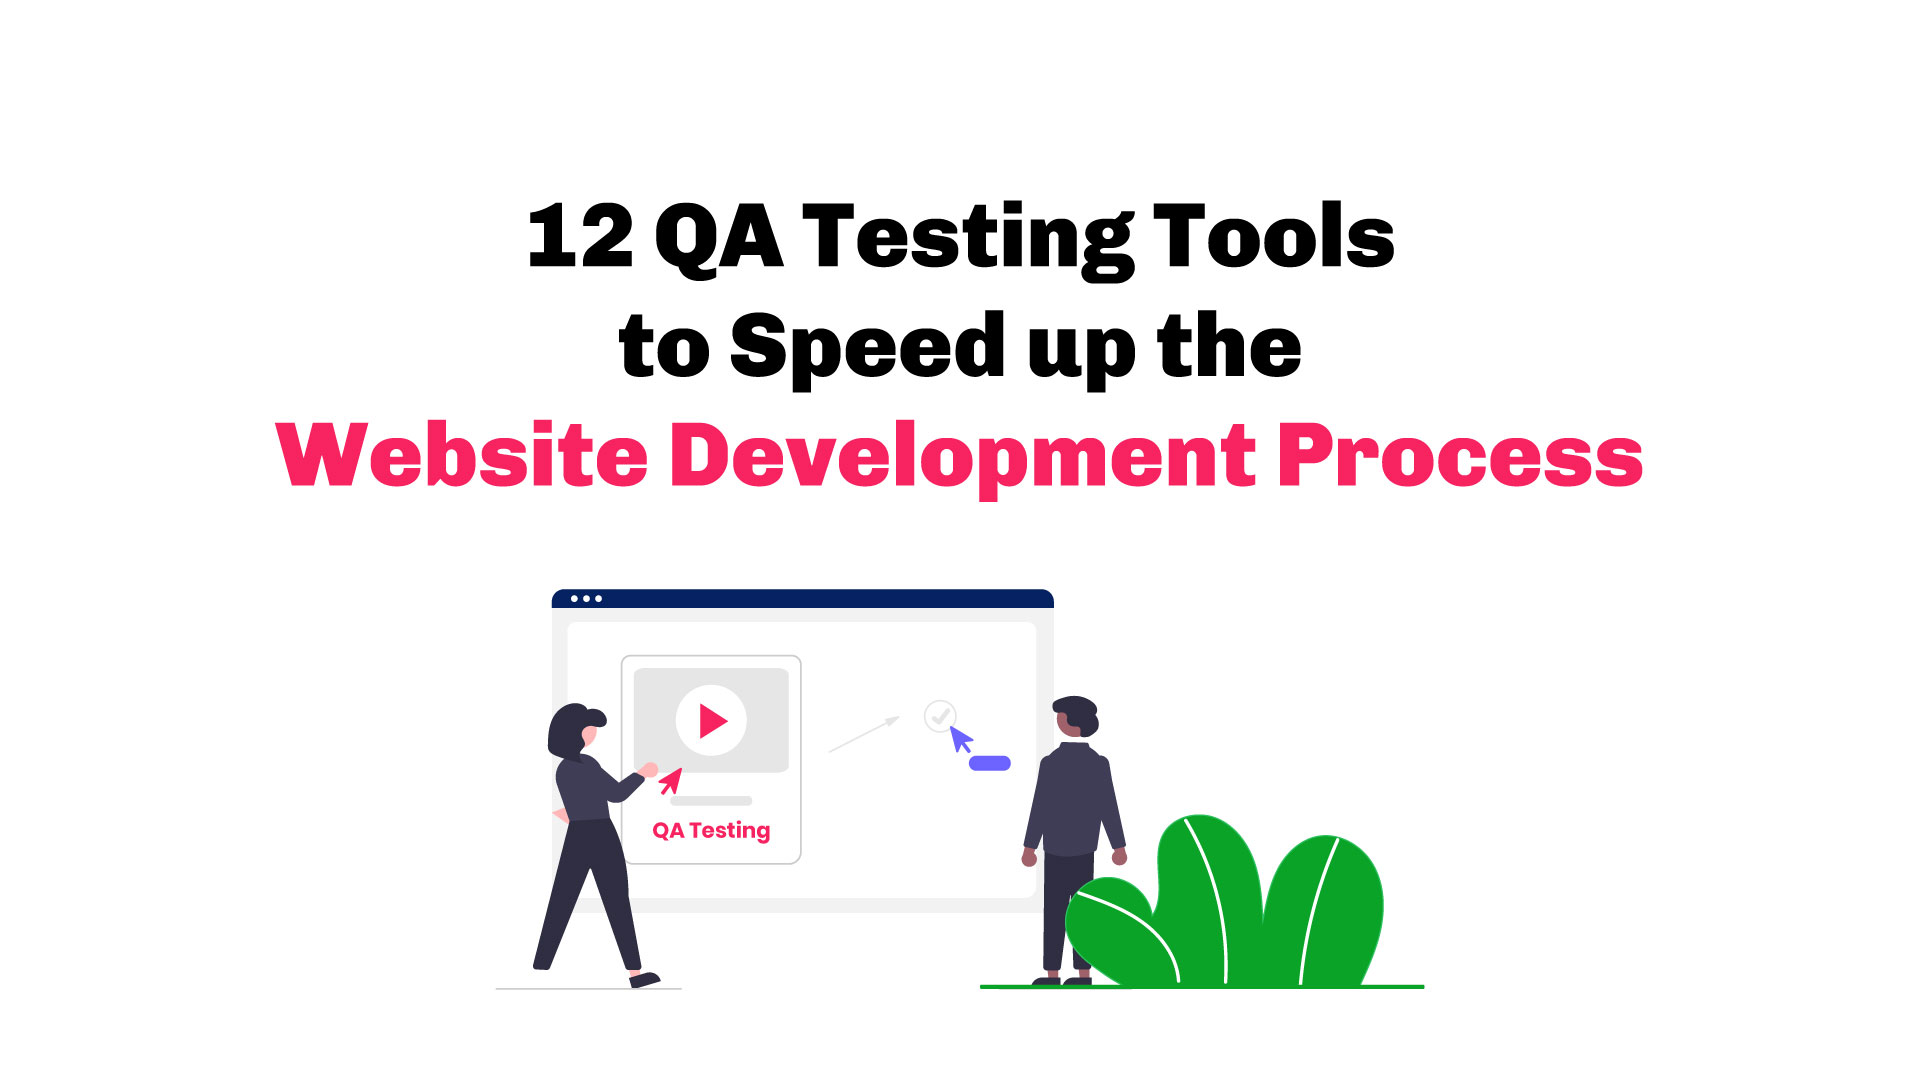 12 QA testing tools to speed up the website development process